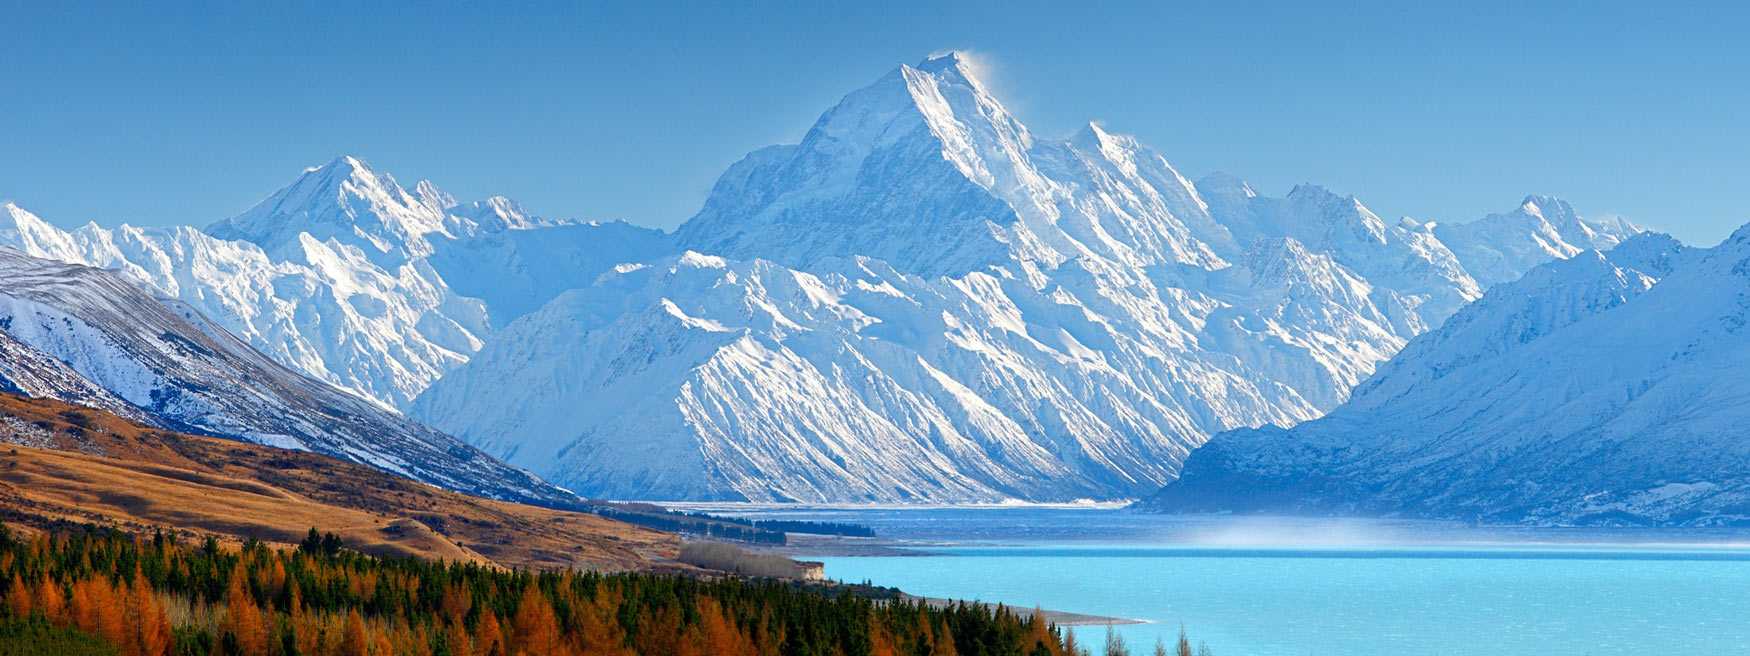 New Zealand Mountains Header